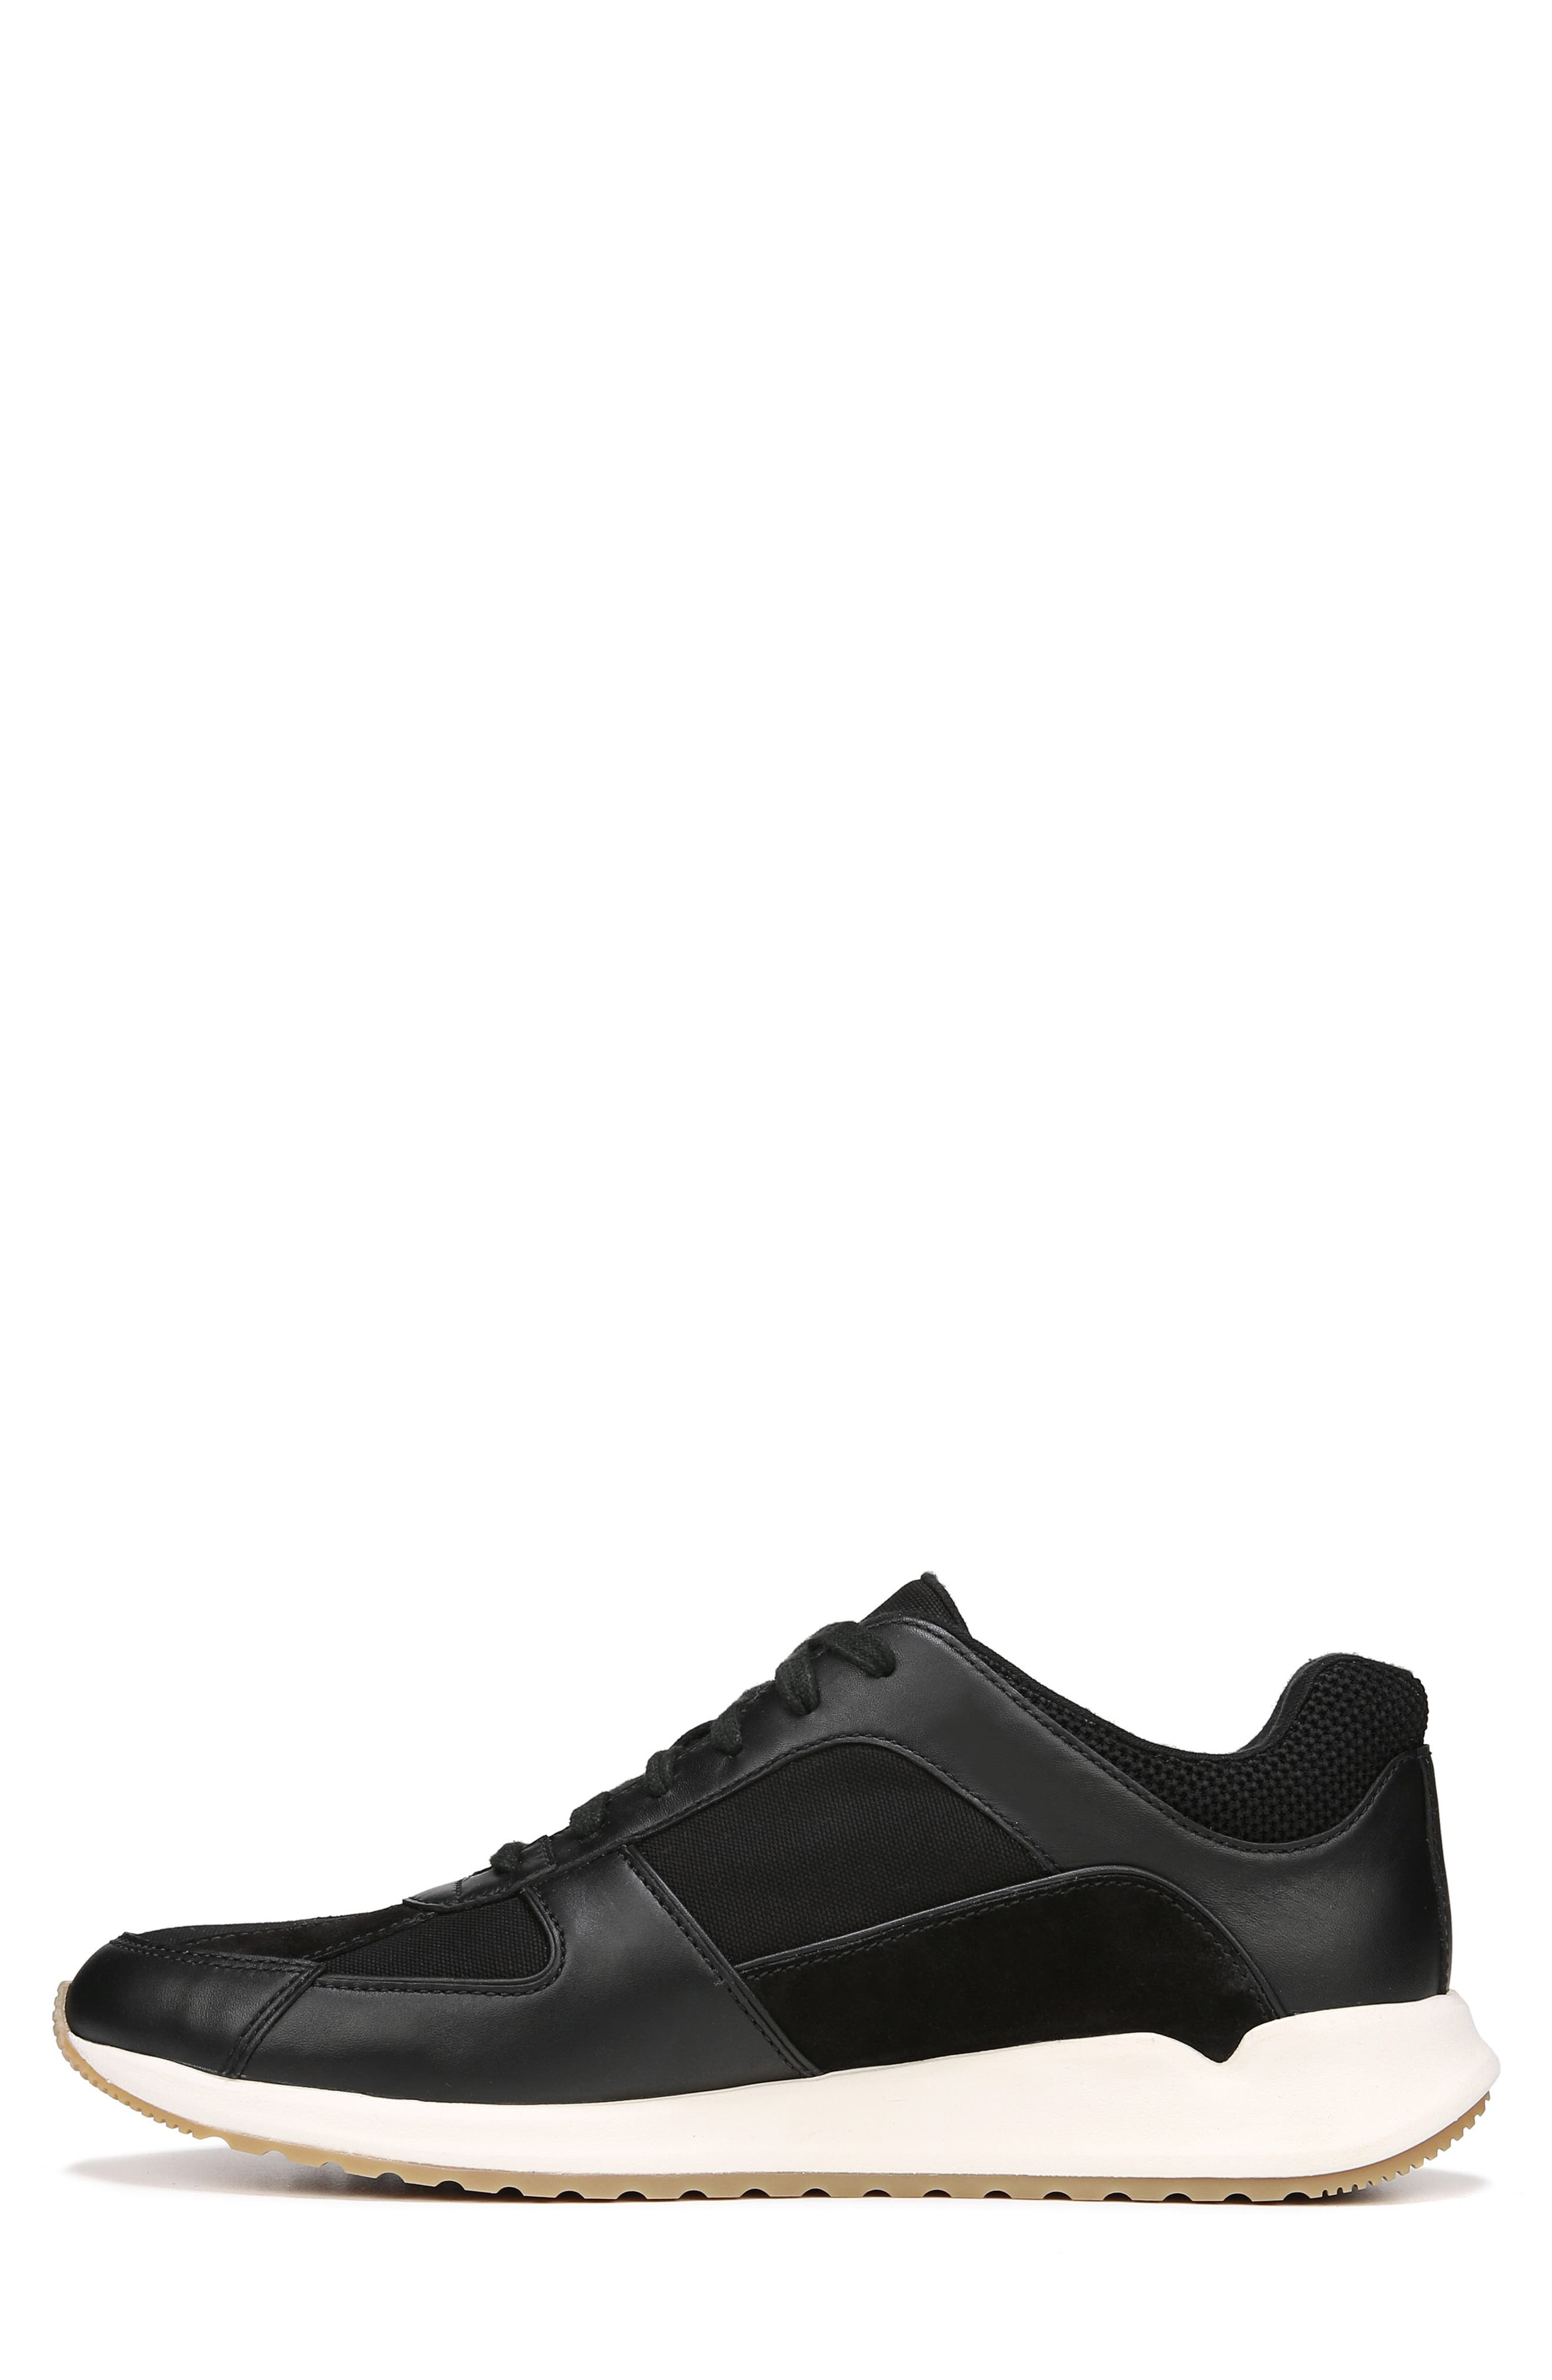 Griffin Sneaker,                             Alternate thumbnail 9, color,                             BLACK/ MADDOX